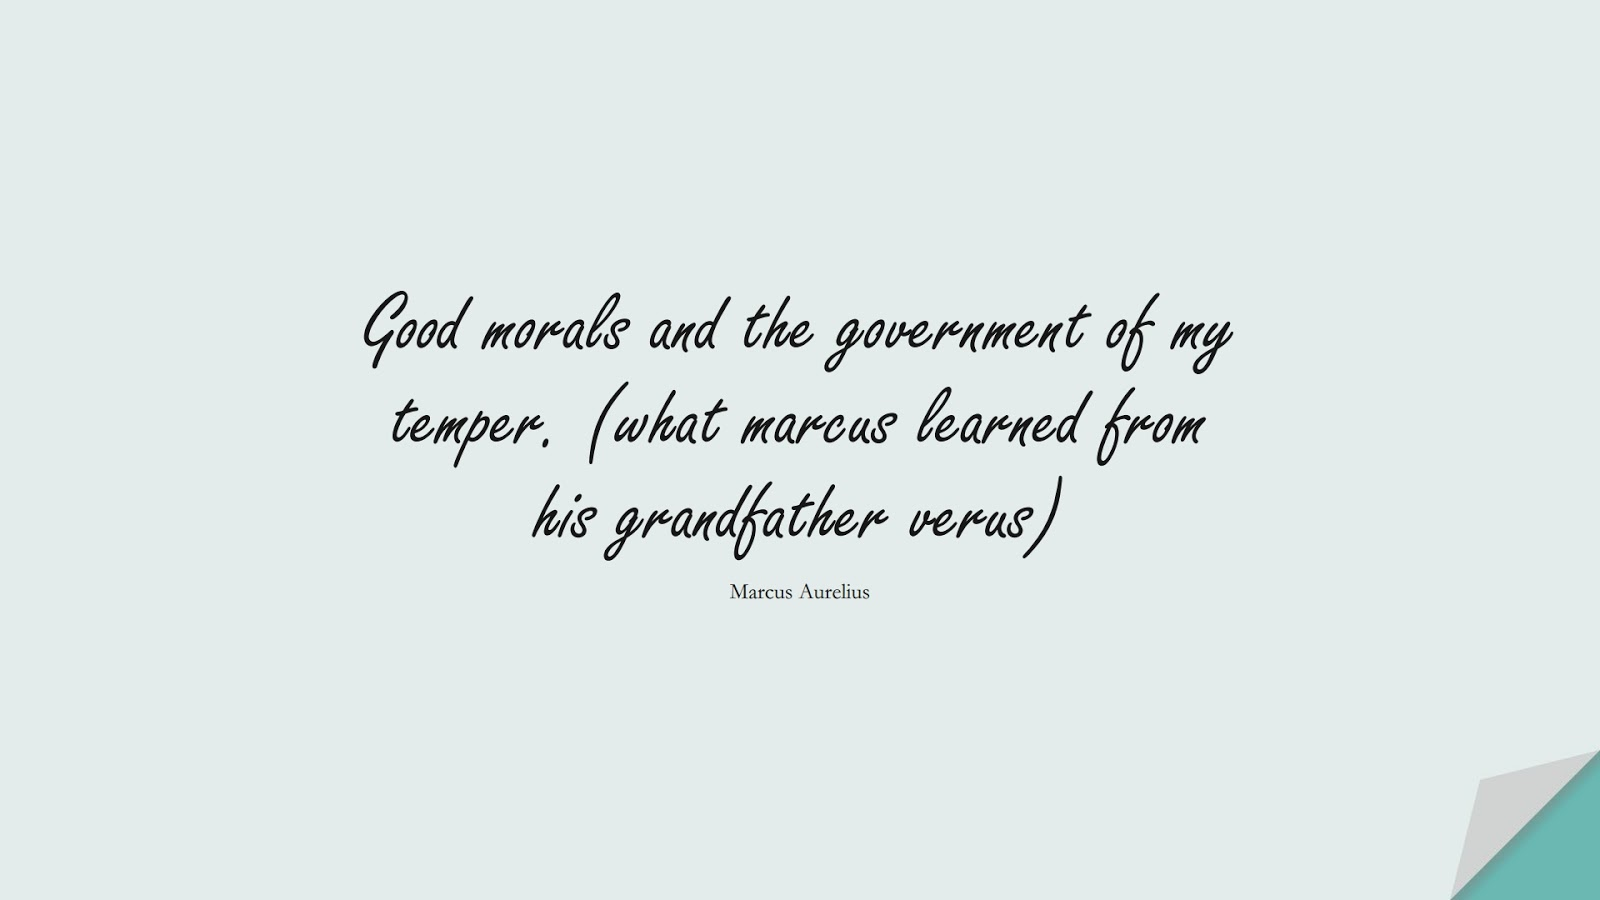 Good morals and the government of my temper. (what marcus learned from his grandfather verus) (Marcus Aurelius);  #MarcusAureliusQuotes